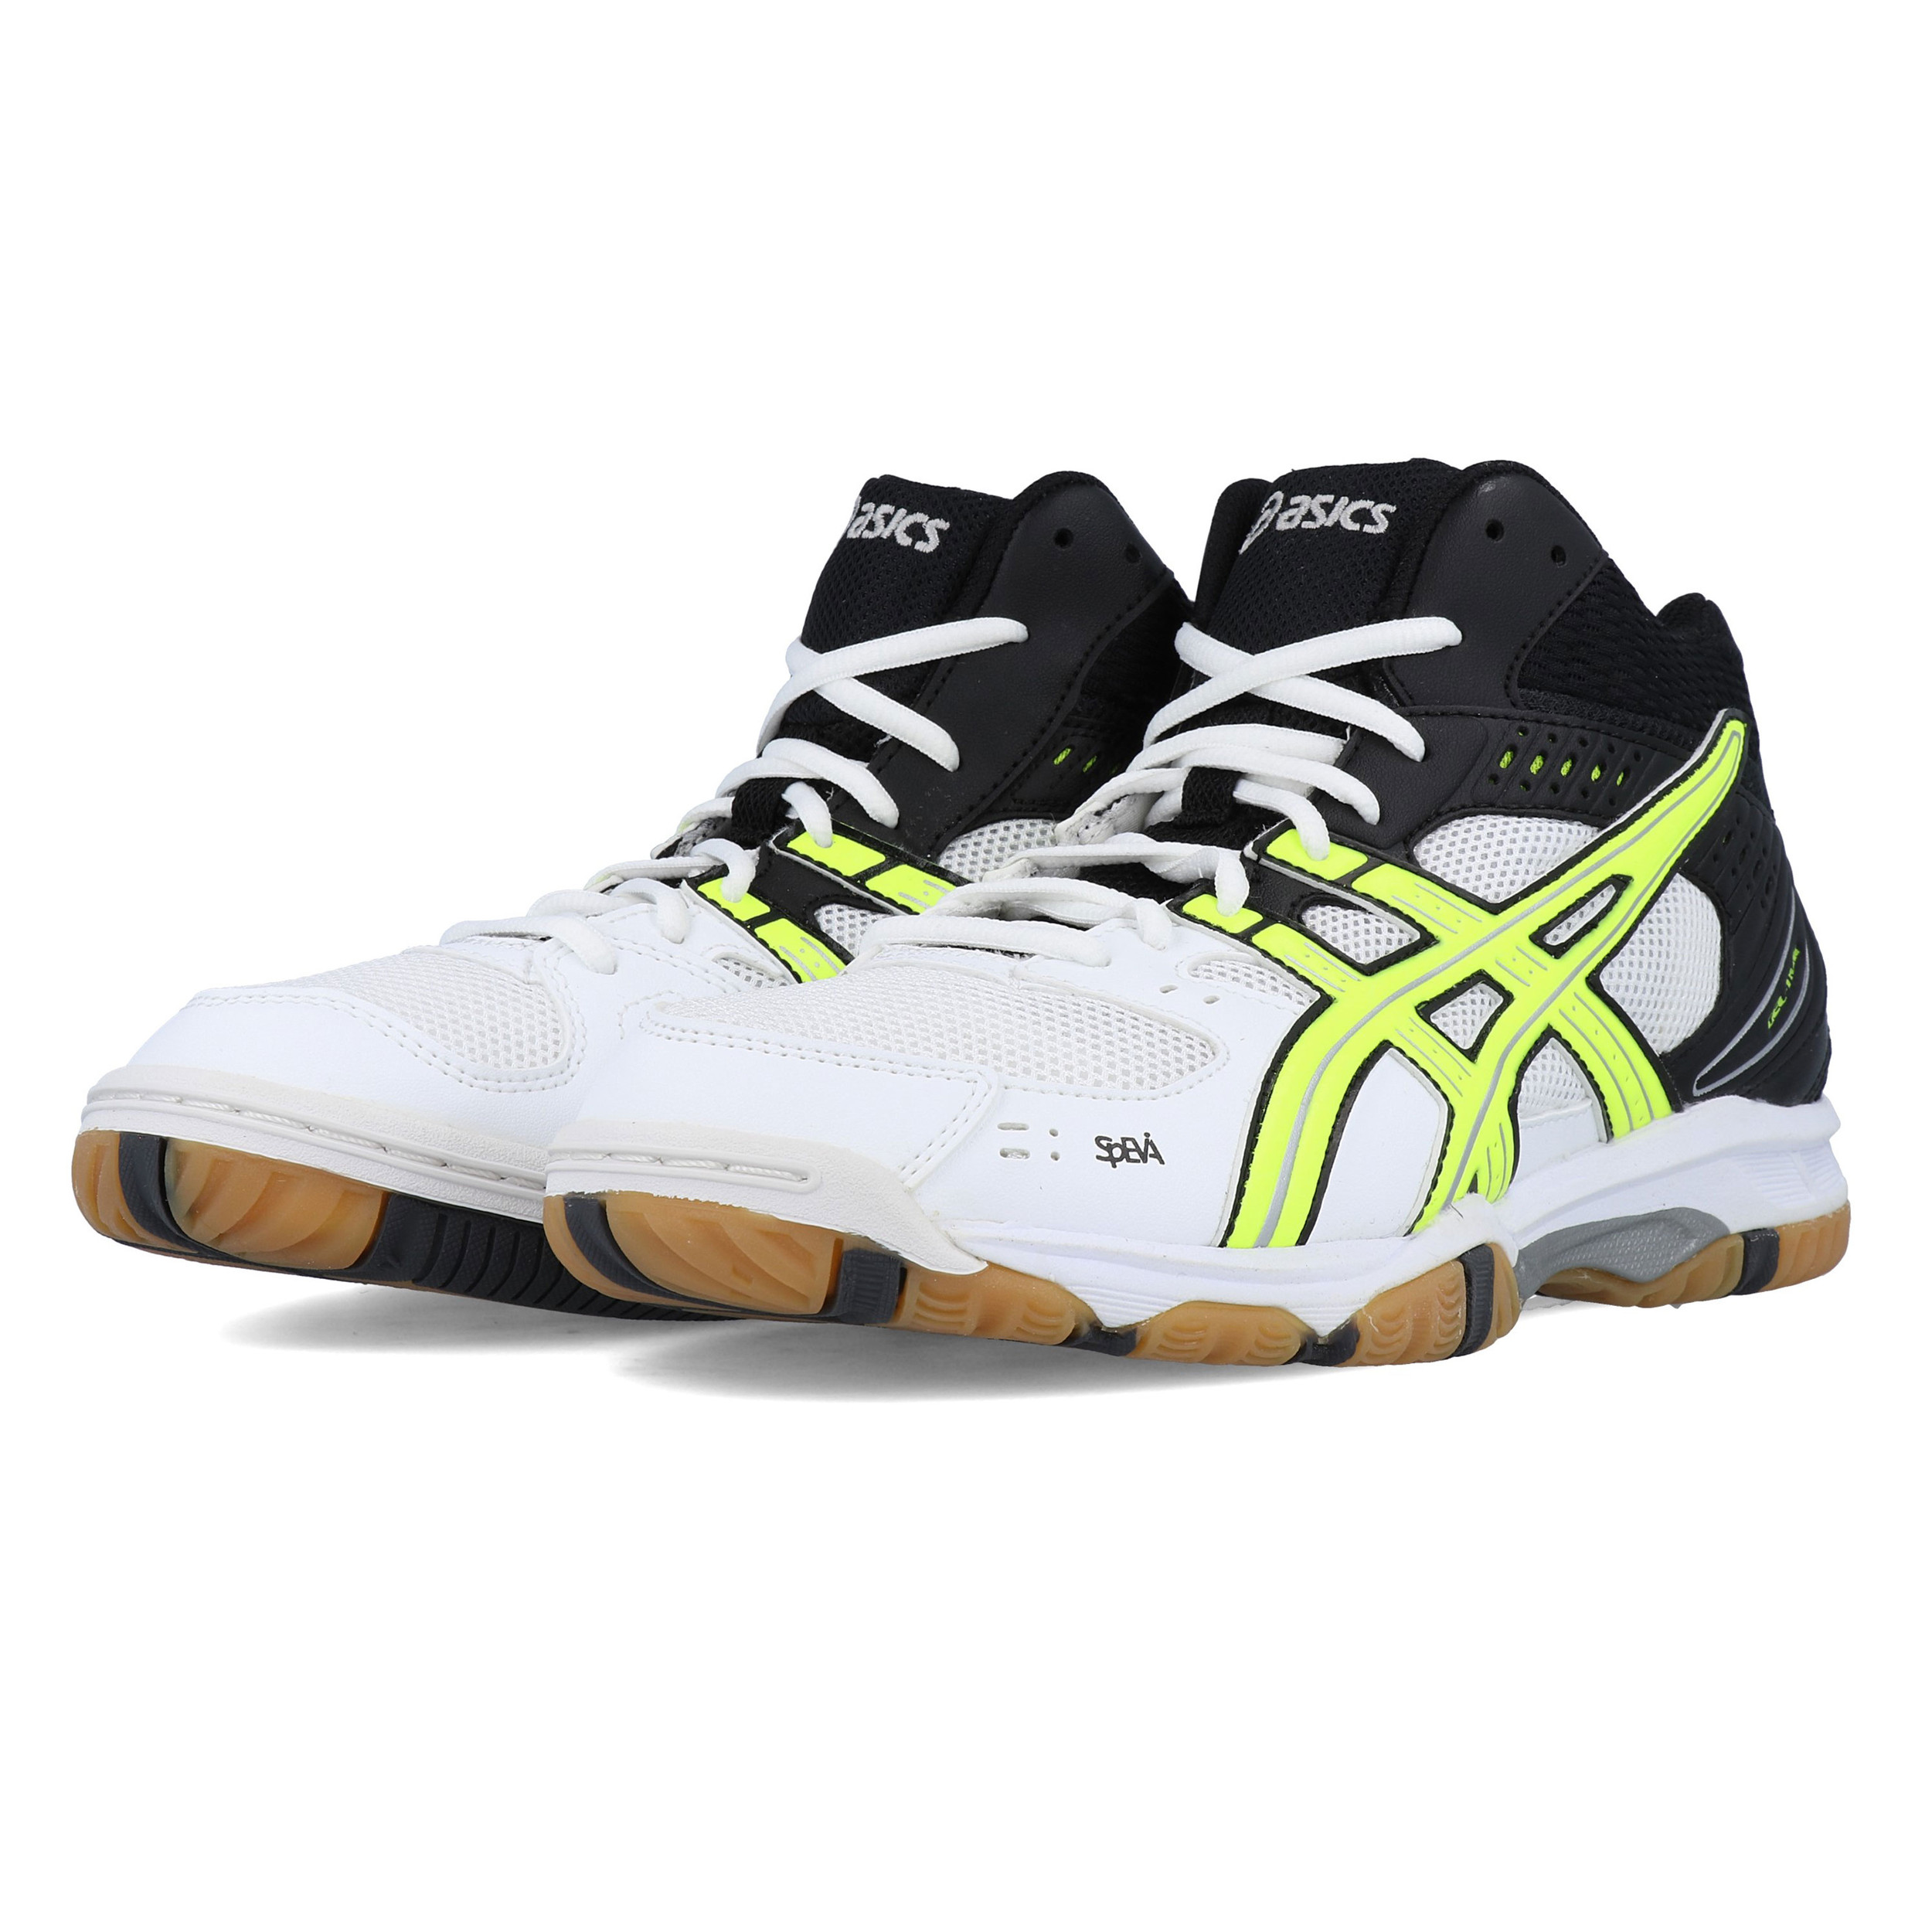 Details about Asics Mens Gel Task MT Volleyball Shoes Black White Yellow Sports Badminton